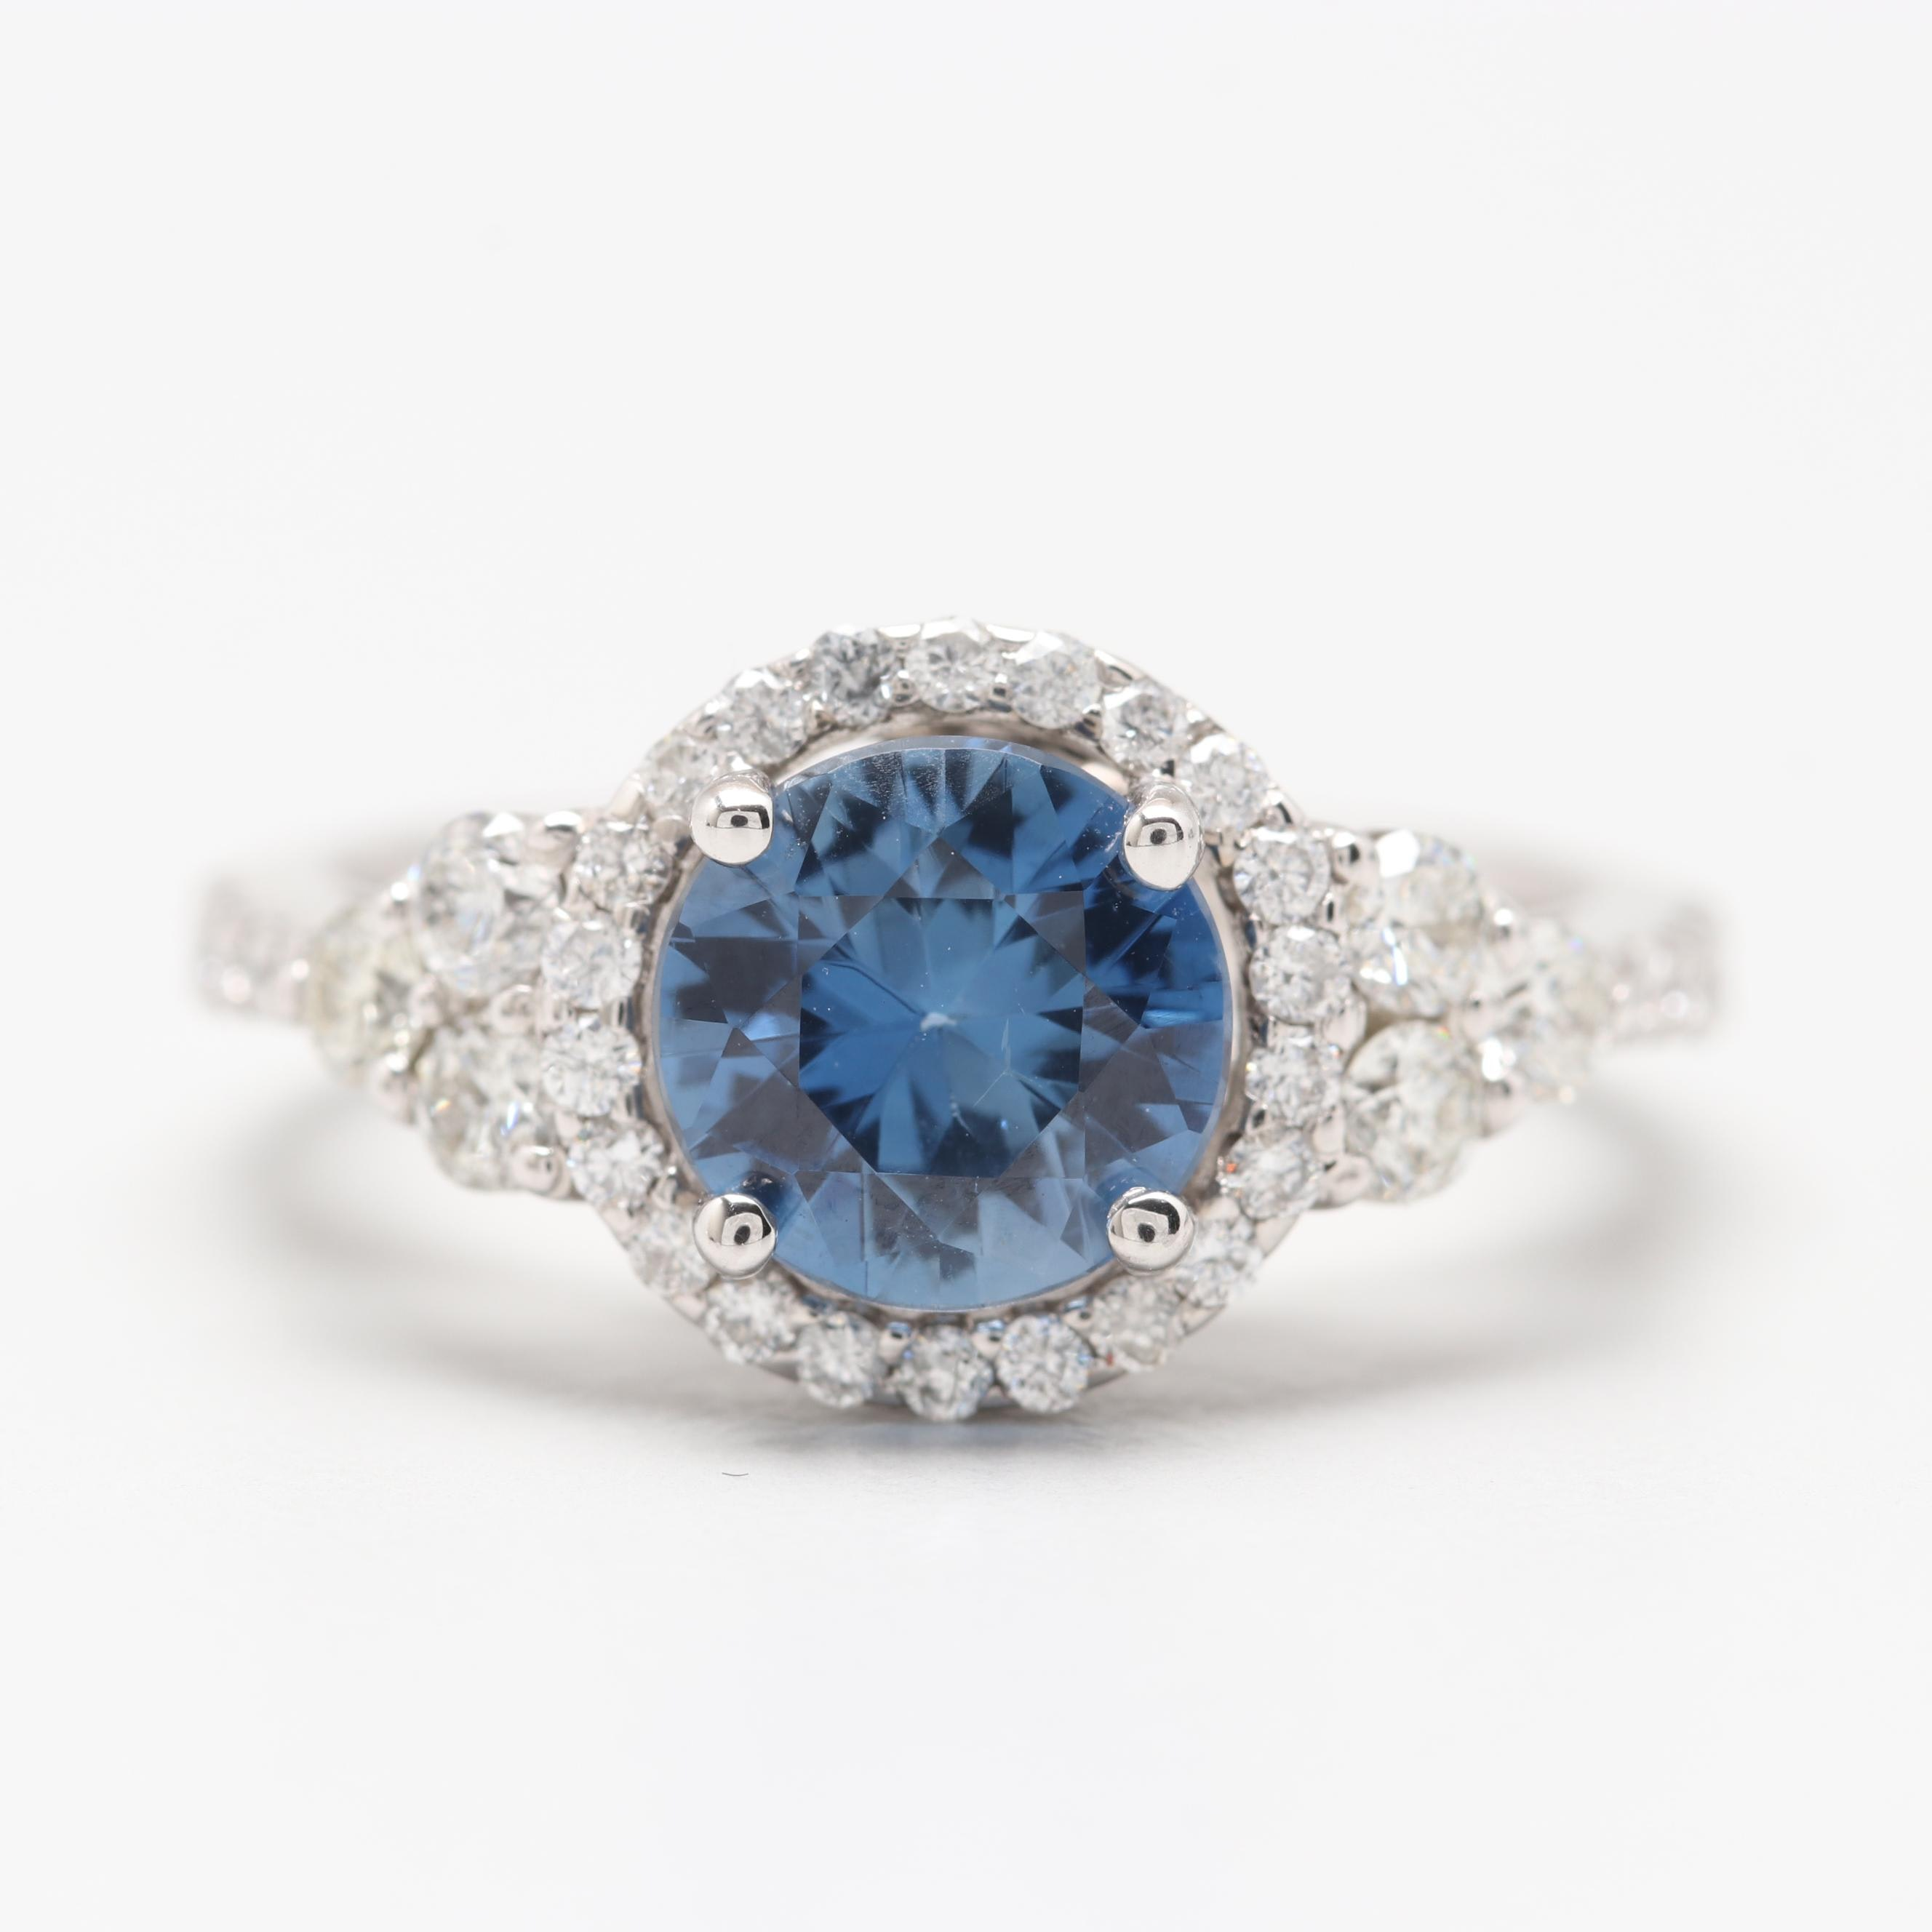 14K White Gold 1.79 CT Untreated Blue Sapphire and Diamond Ring with GIA Report